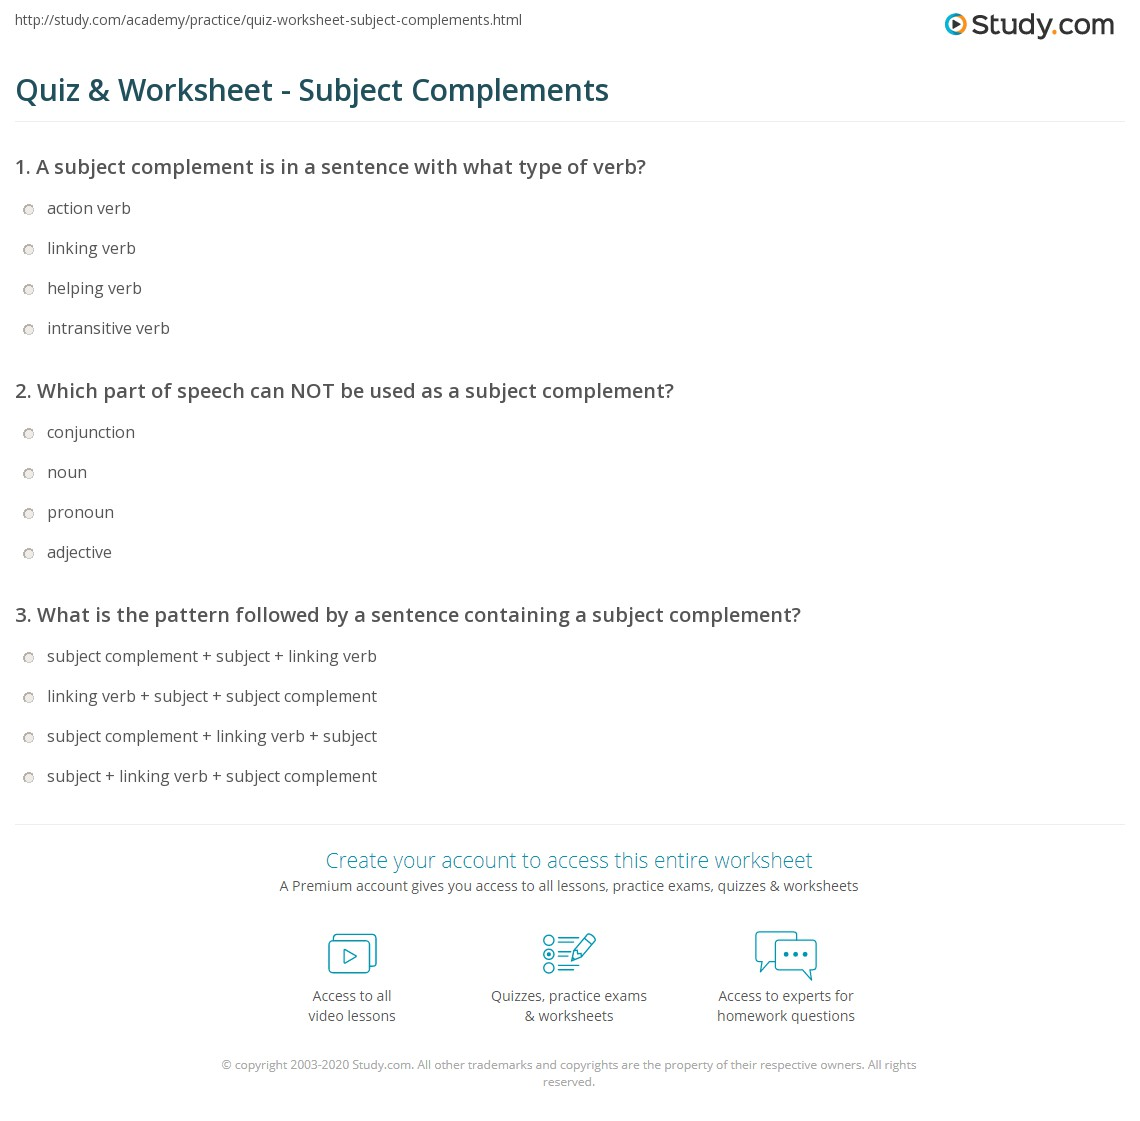 Quiz & Worksheet - Subject Complements | Study.com